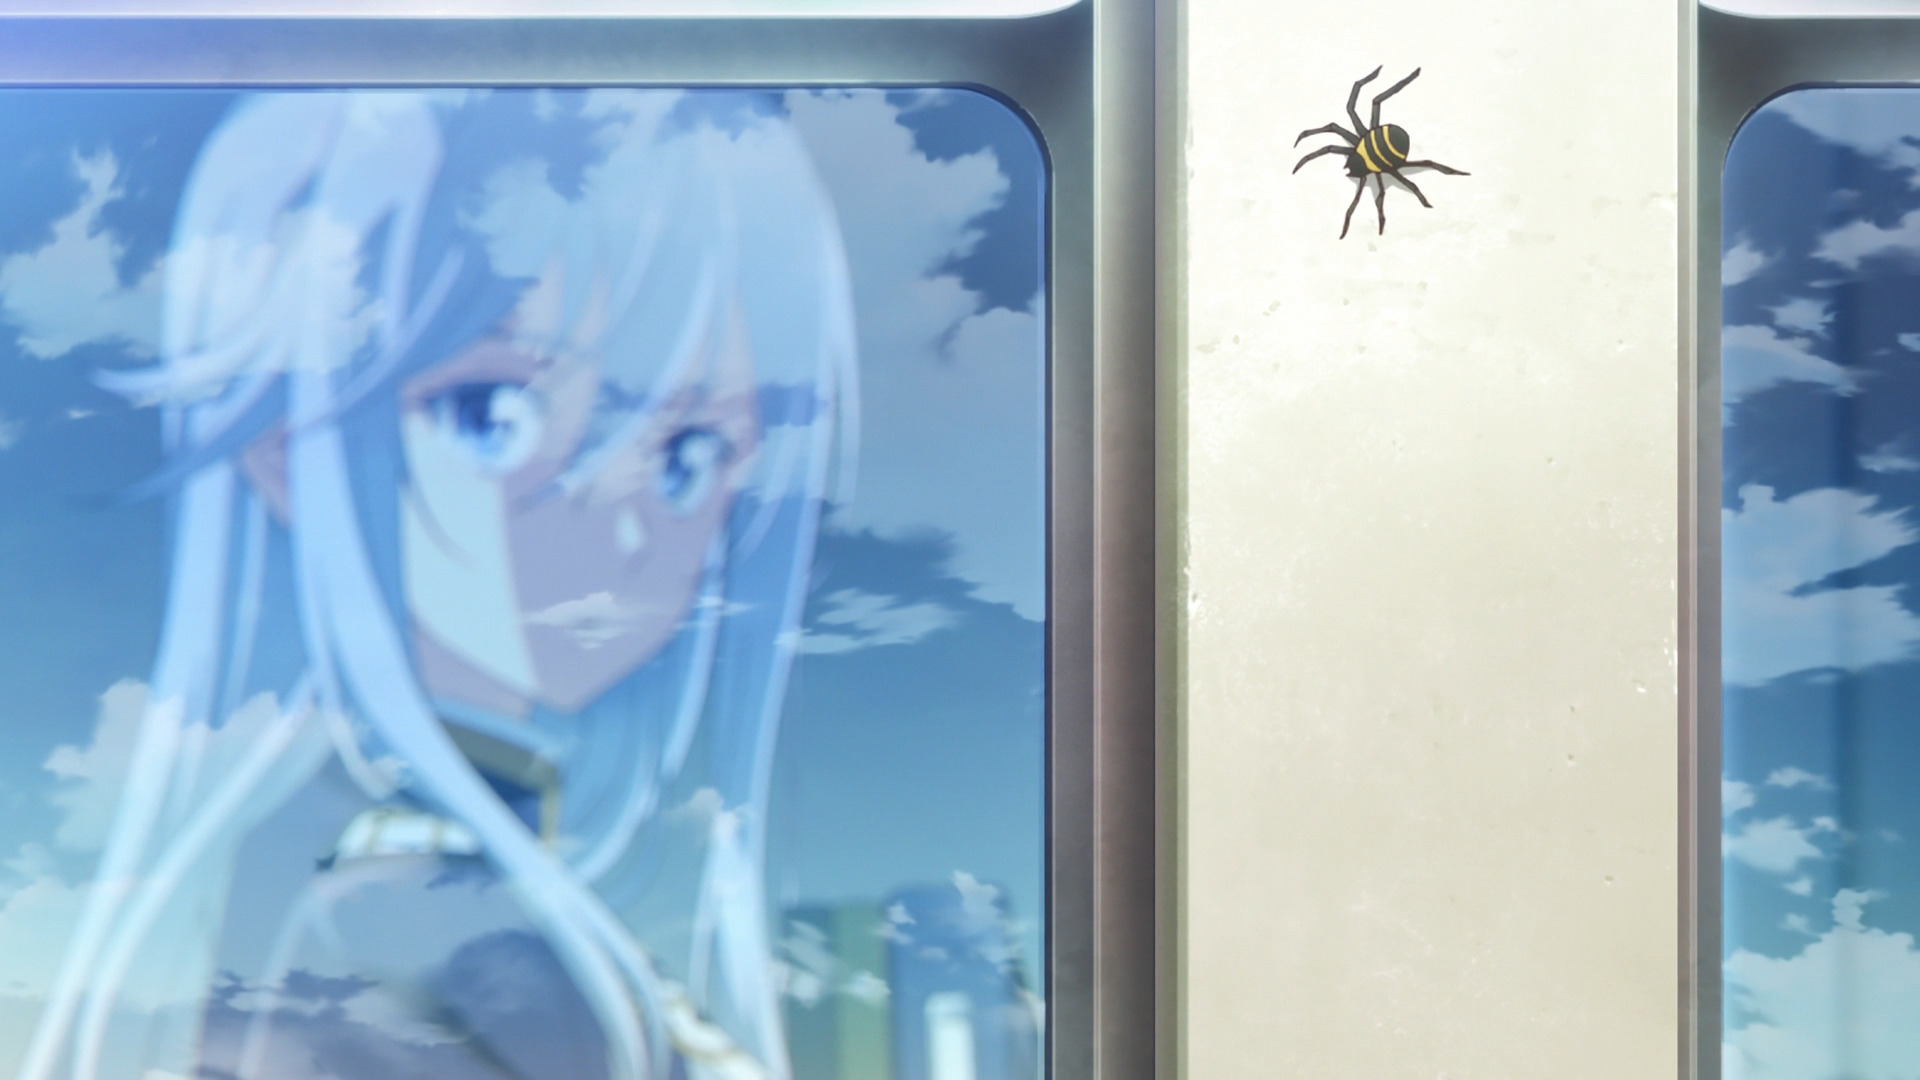 Lena looking out the window with a spider near the she cannot see.